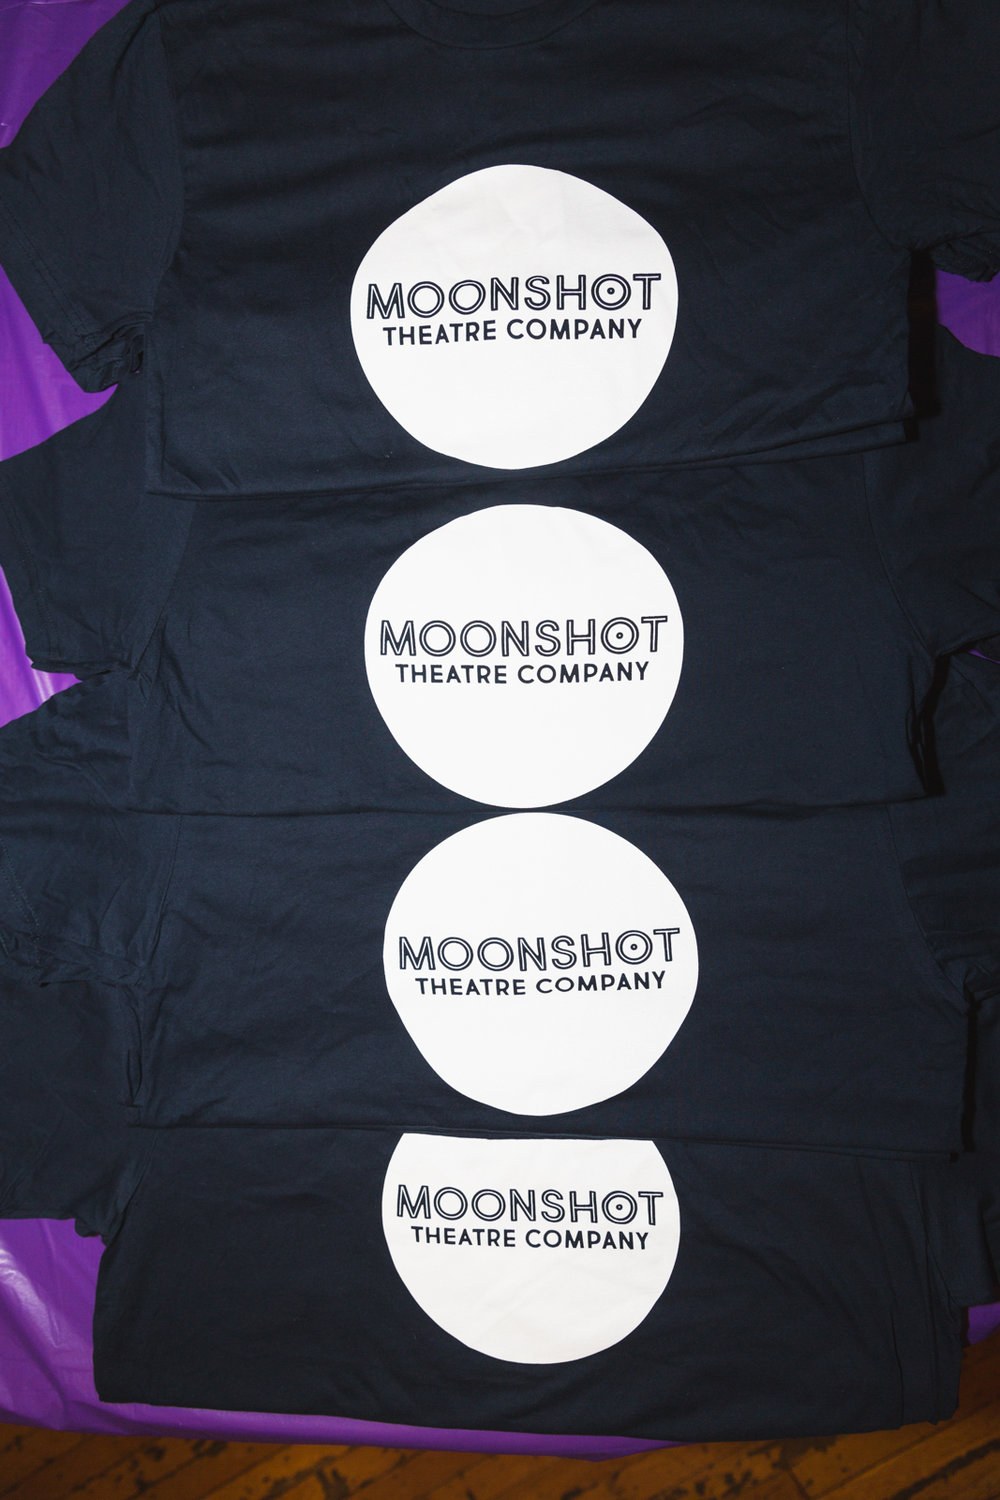 Moonshot Theatre T-Shirts created by The Brooklyn Press. Photo by Travis Emery Hackett.